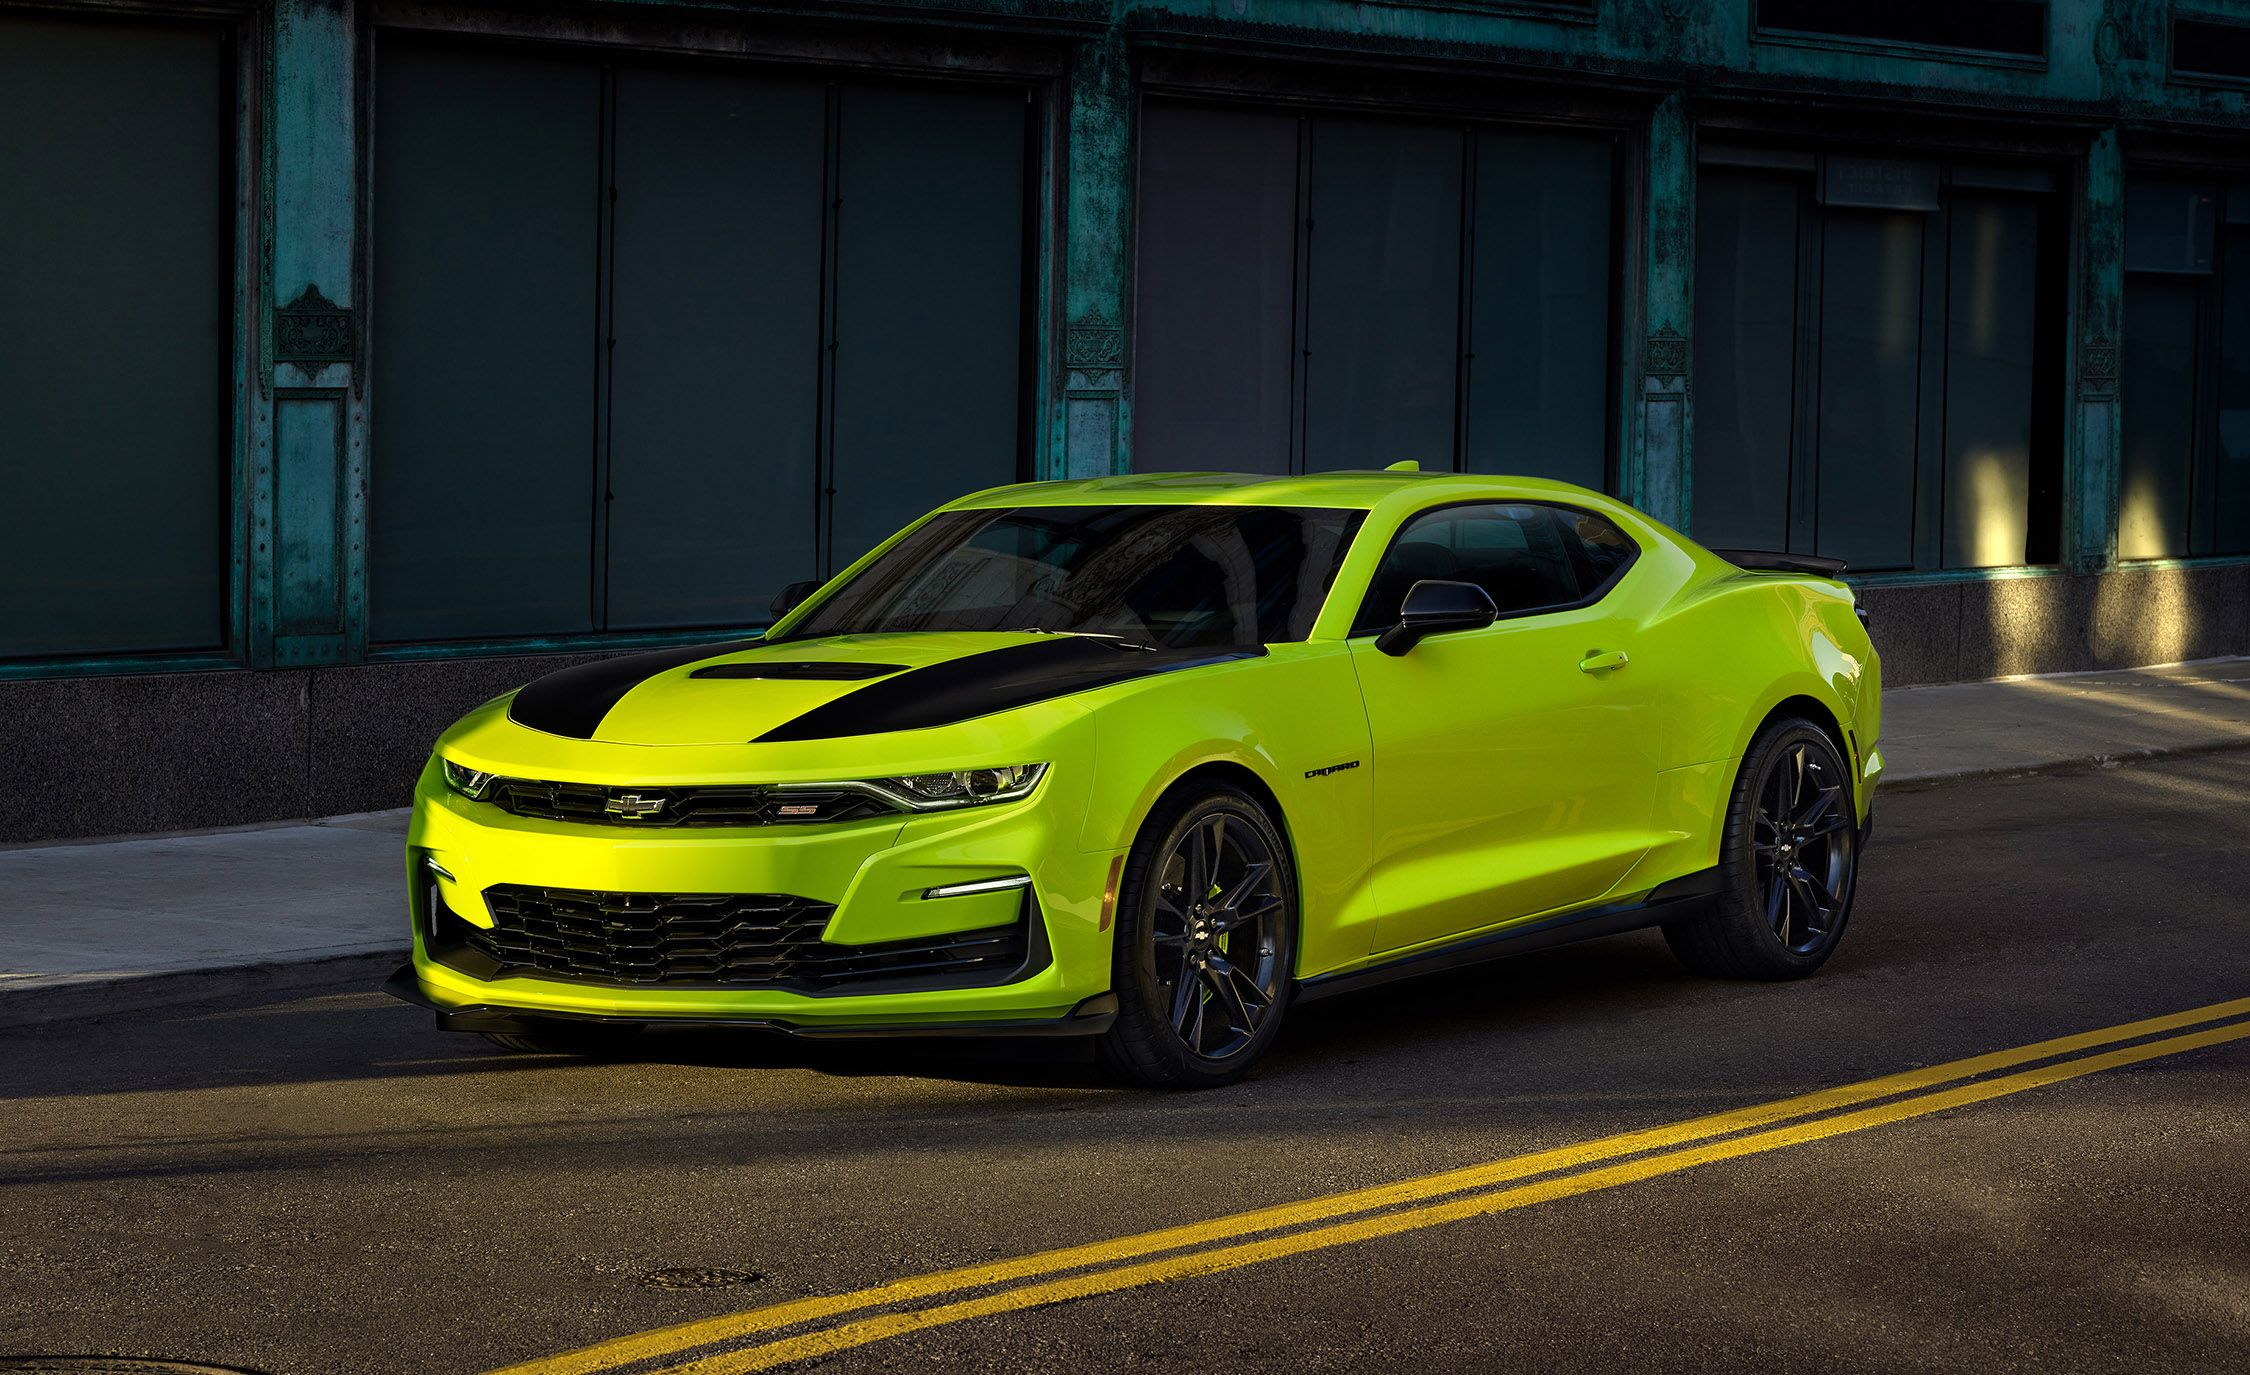 2019 Chevrolet Camaro Adds Extreme Yellow Color Preview The Sema